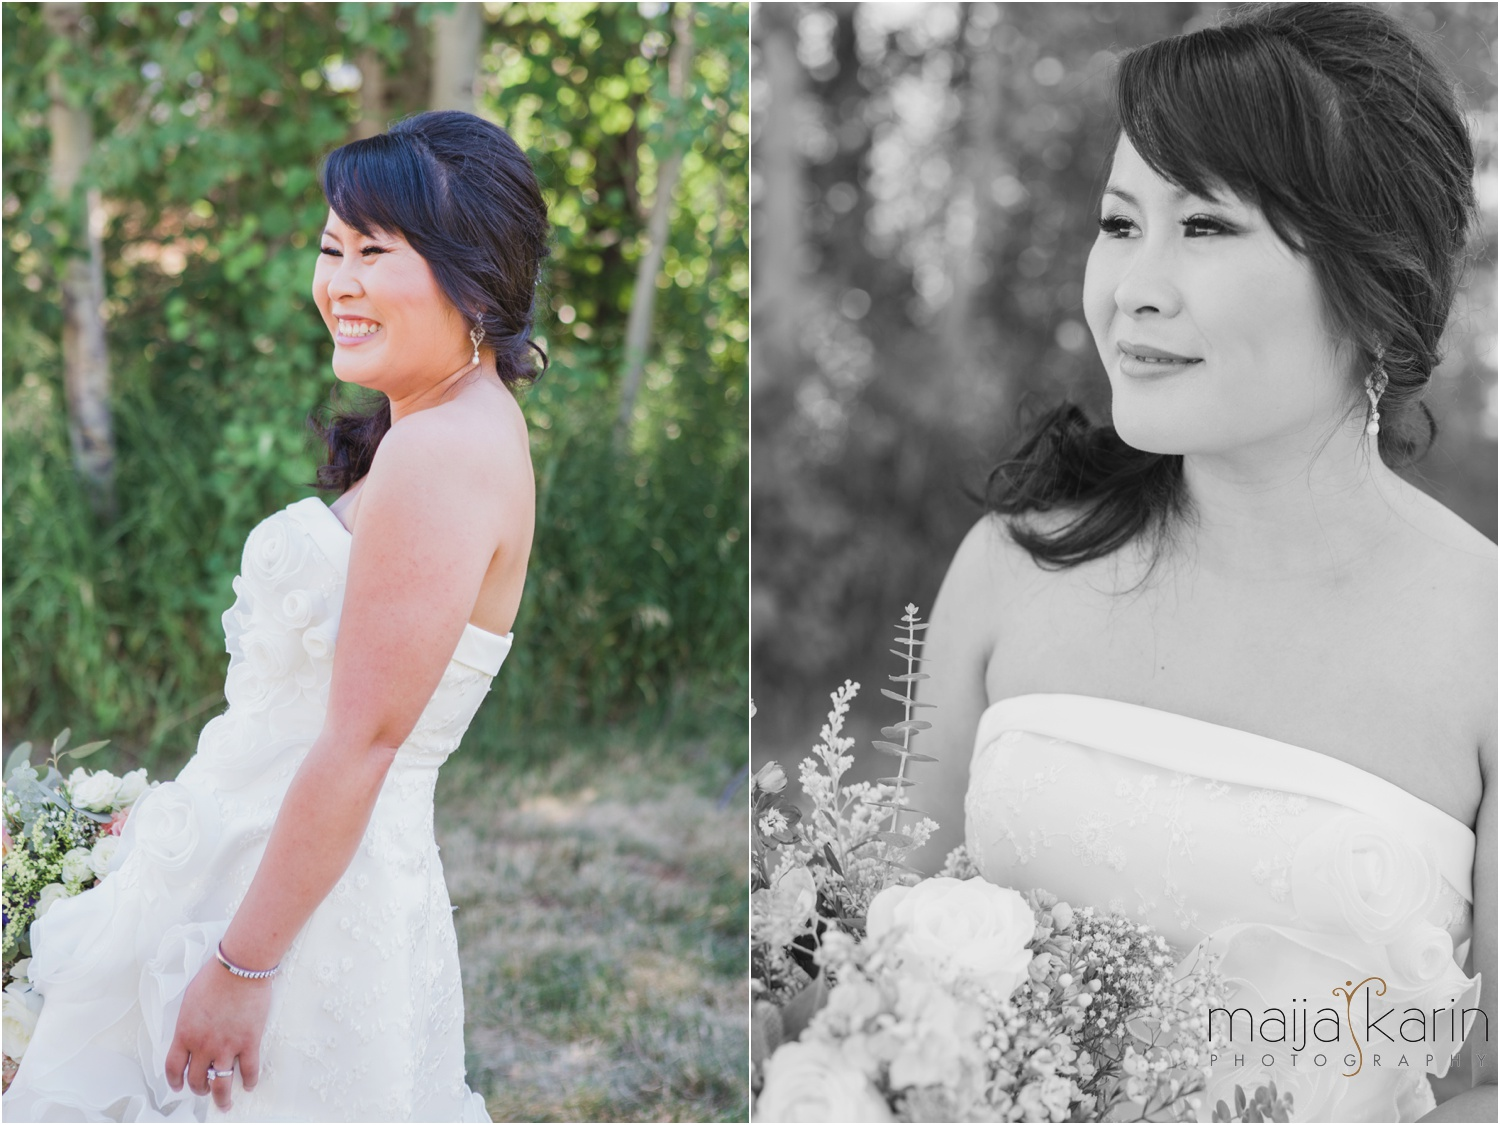 Mountain-Springs-Lodge-Leavenworth-Washington-Wedding-Photographer-Majiin-Karin-Photography_38.jpg